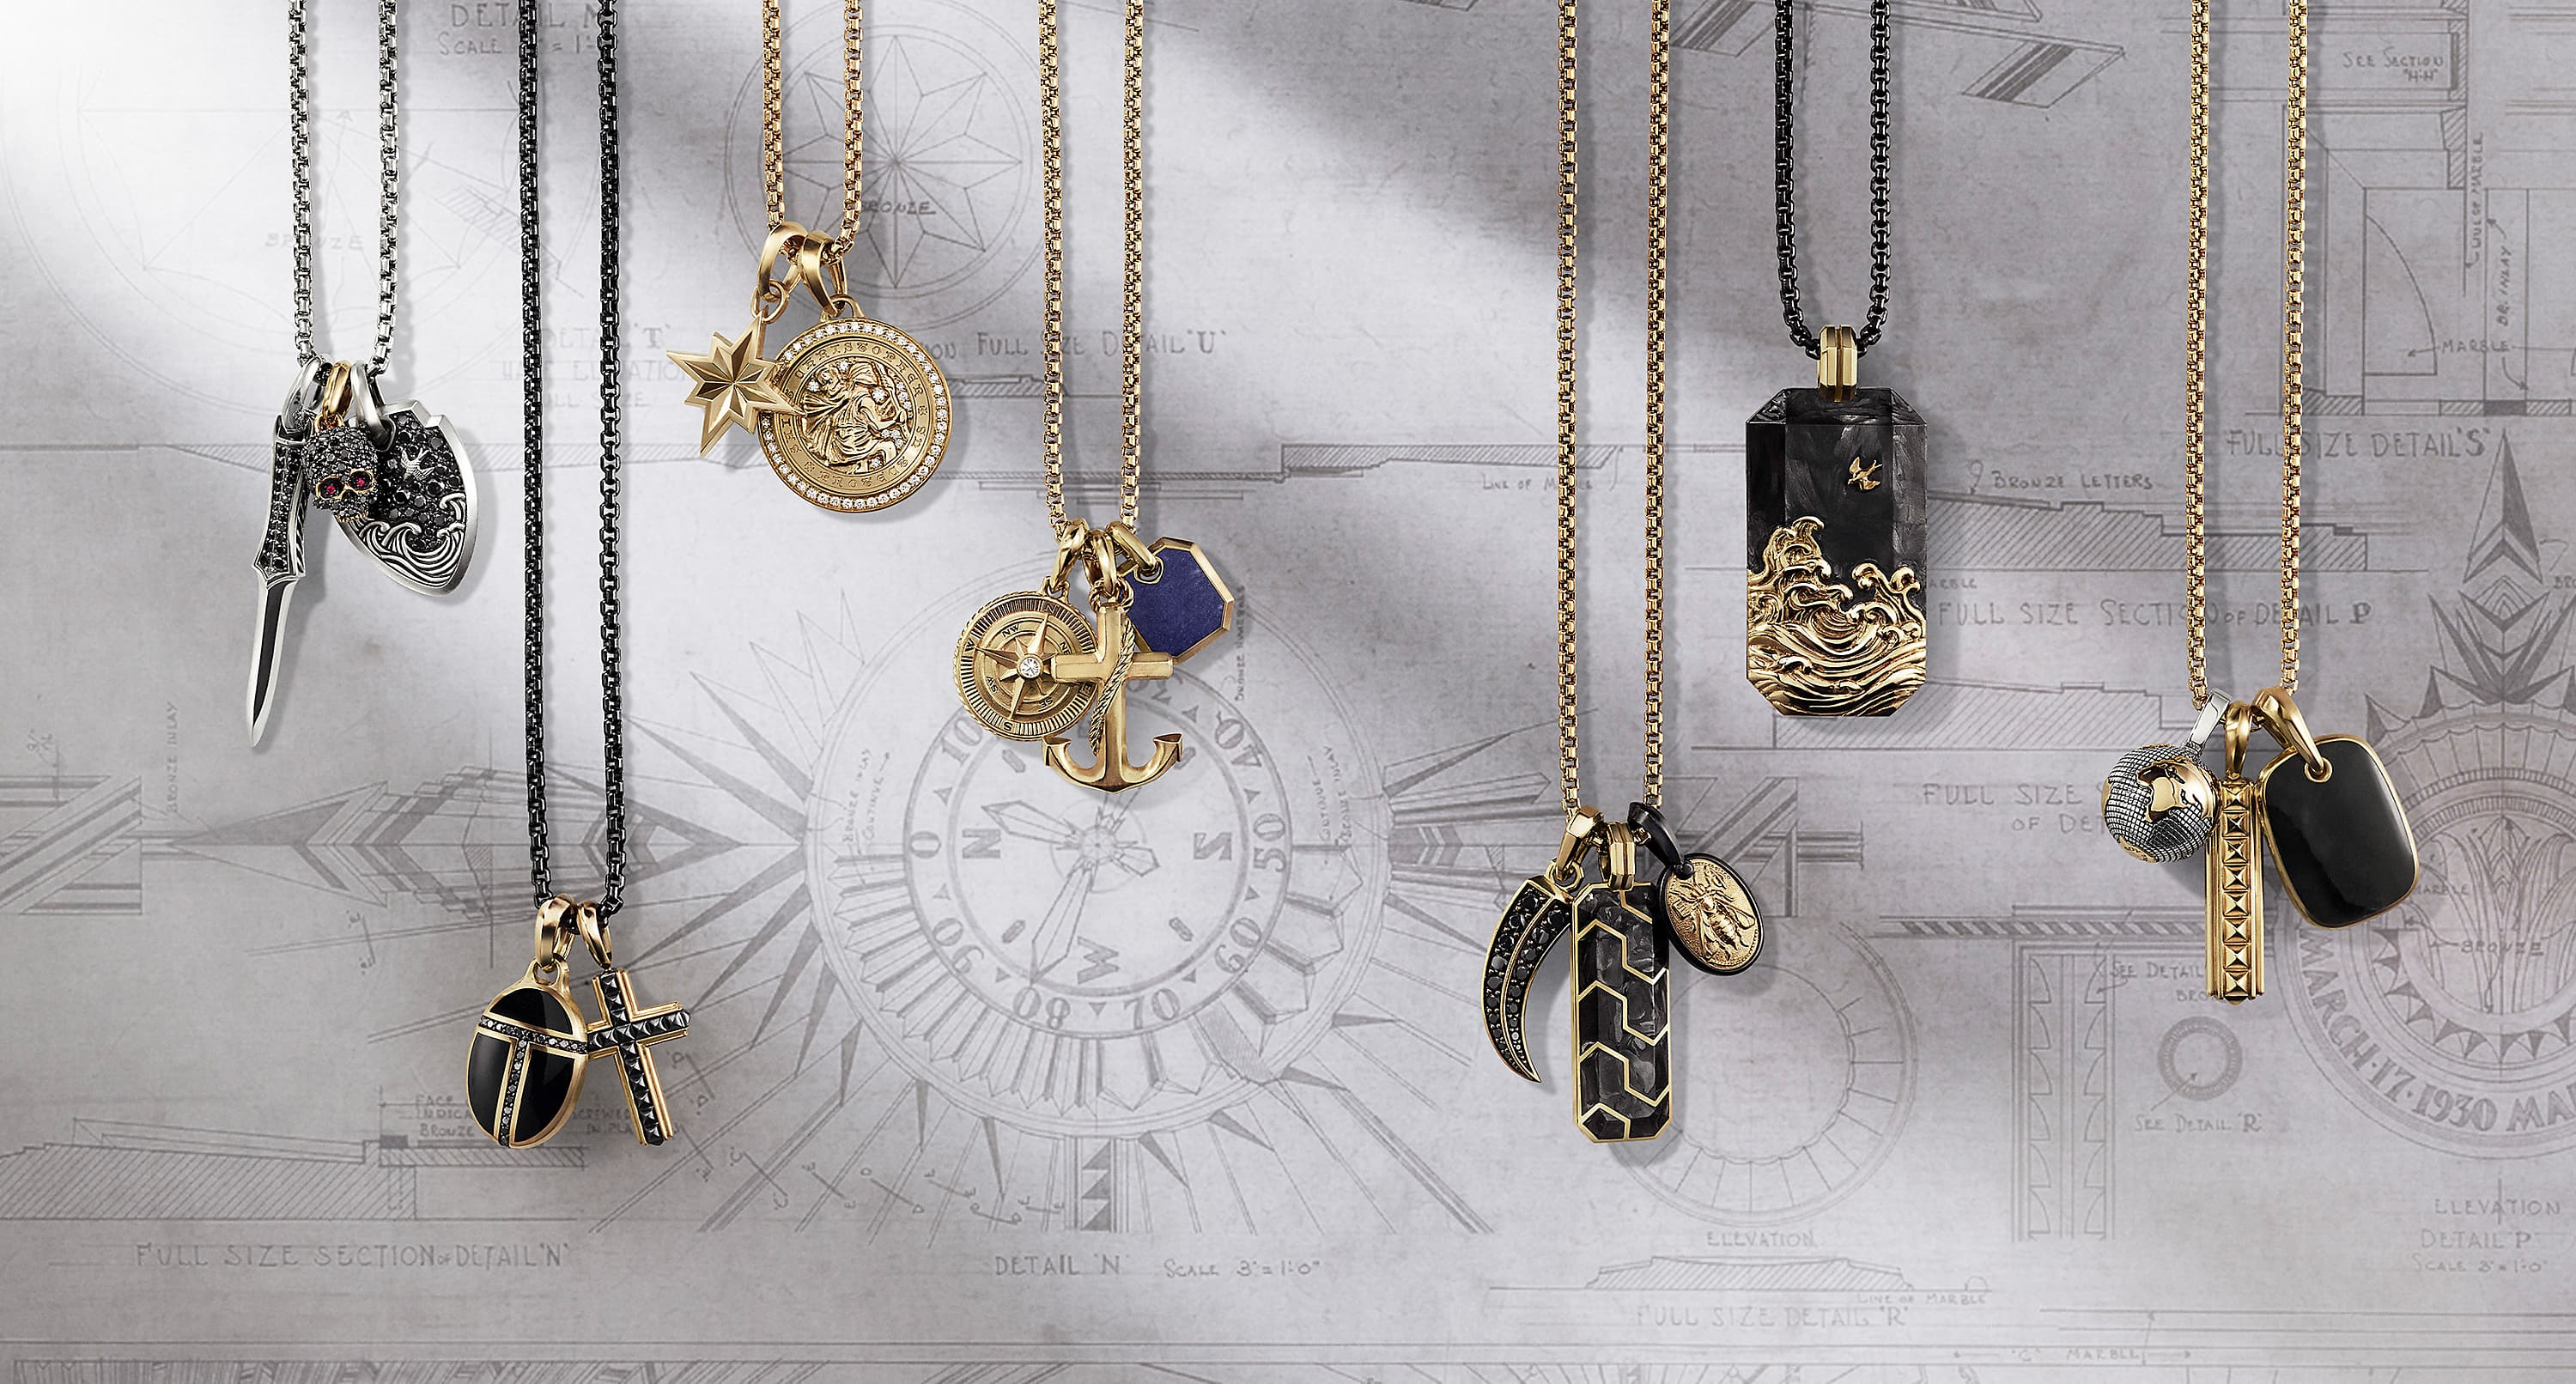 A color photo shows seven David Yurman men's box chains strung with various amulets—all hanging in front of a white-and-grey backdrop with sketches of clocks, architectural elements and soft shadows. The amulets are designed in various shapes like dog tags, a black diamond skull with rubies, a black diamond horn, a lapis lazuli octagon, the Earth and an anchor. The jewelry is crafted from sterling silver, 18K yellow gold, blackened stainless steel, forged carbon or black titanium with 18K yellow gold or mixed metals.